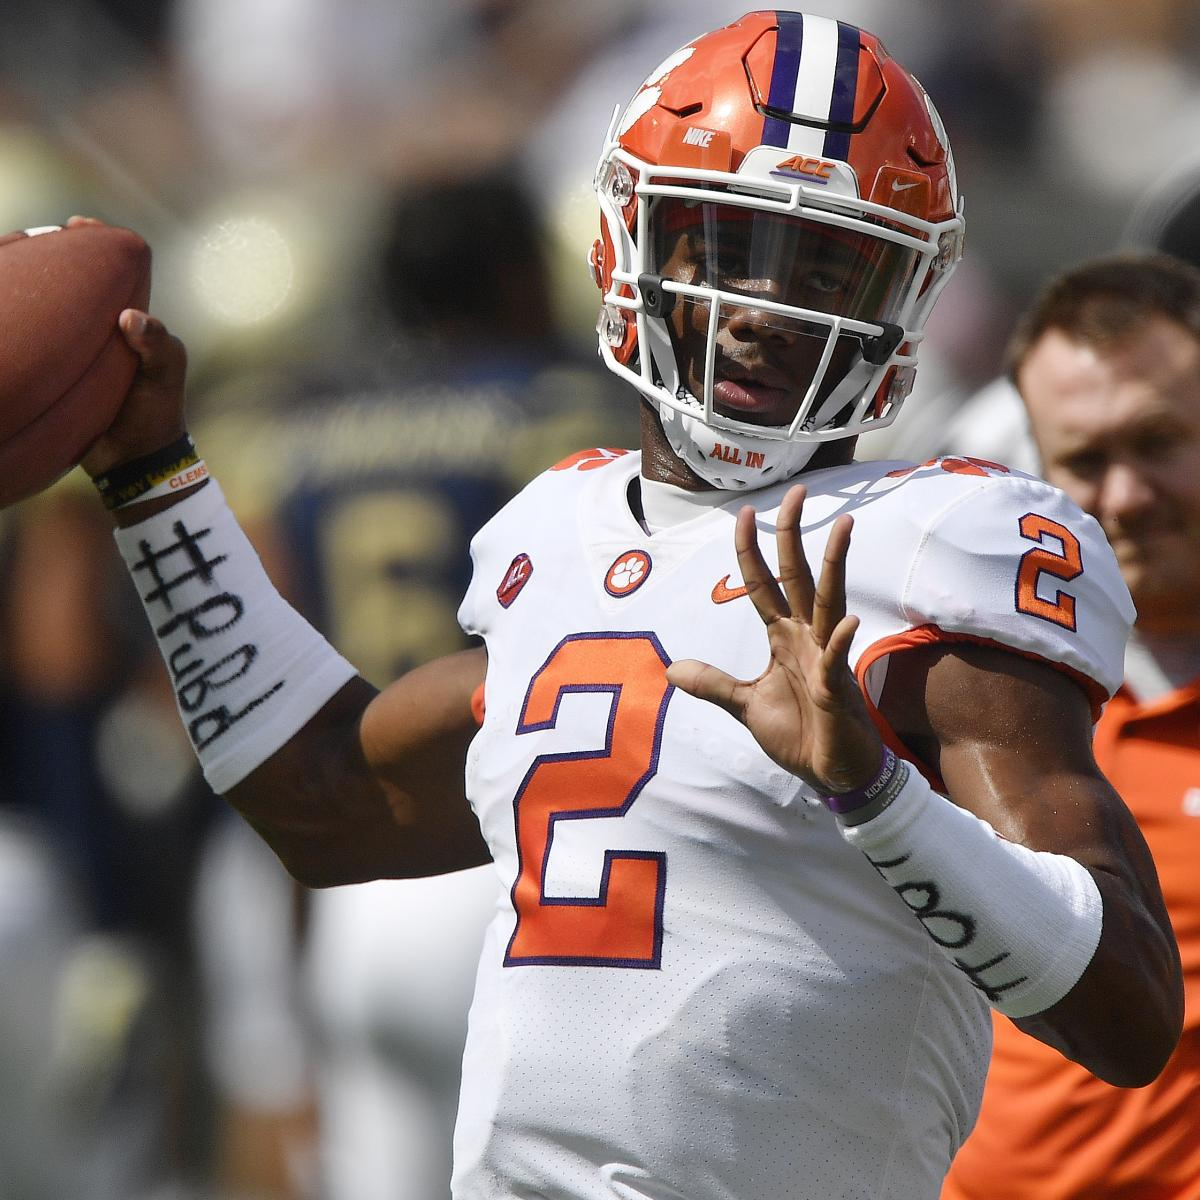 Clemson Qb Kelly Bryant To Transfer After Being Replaced